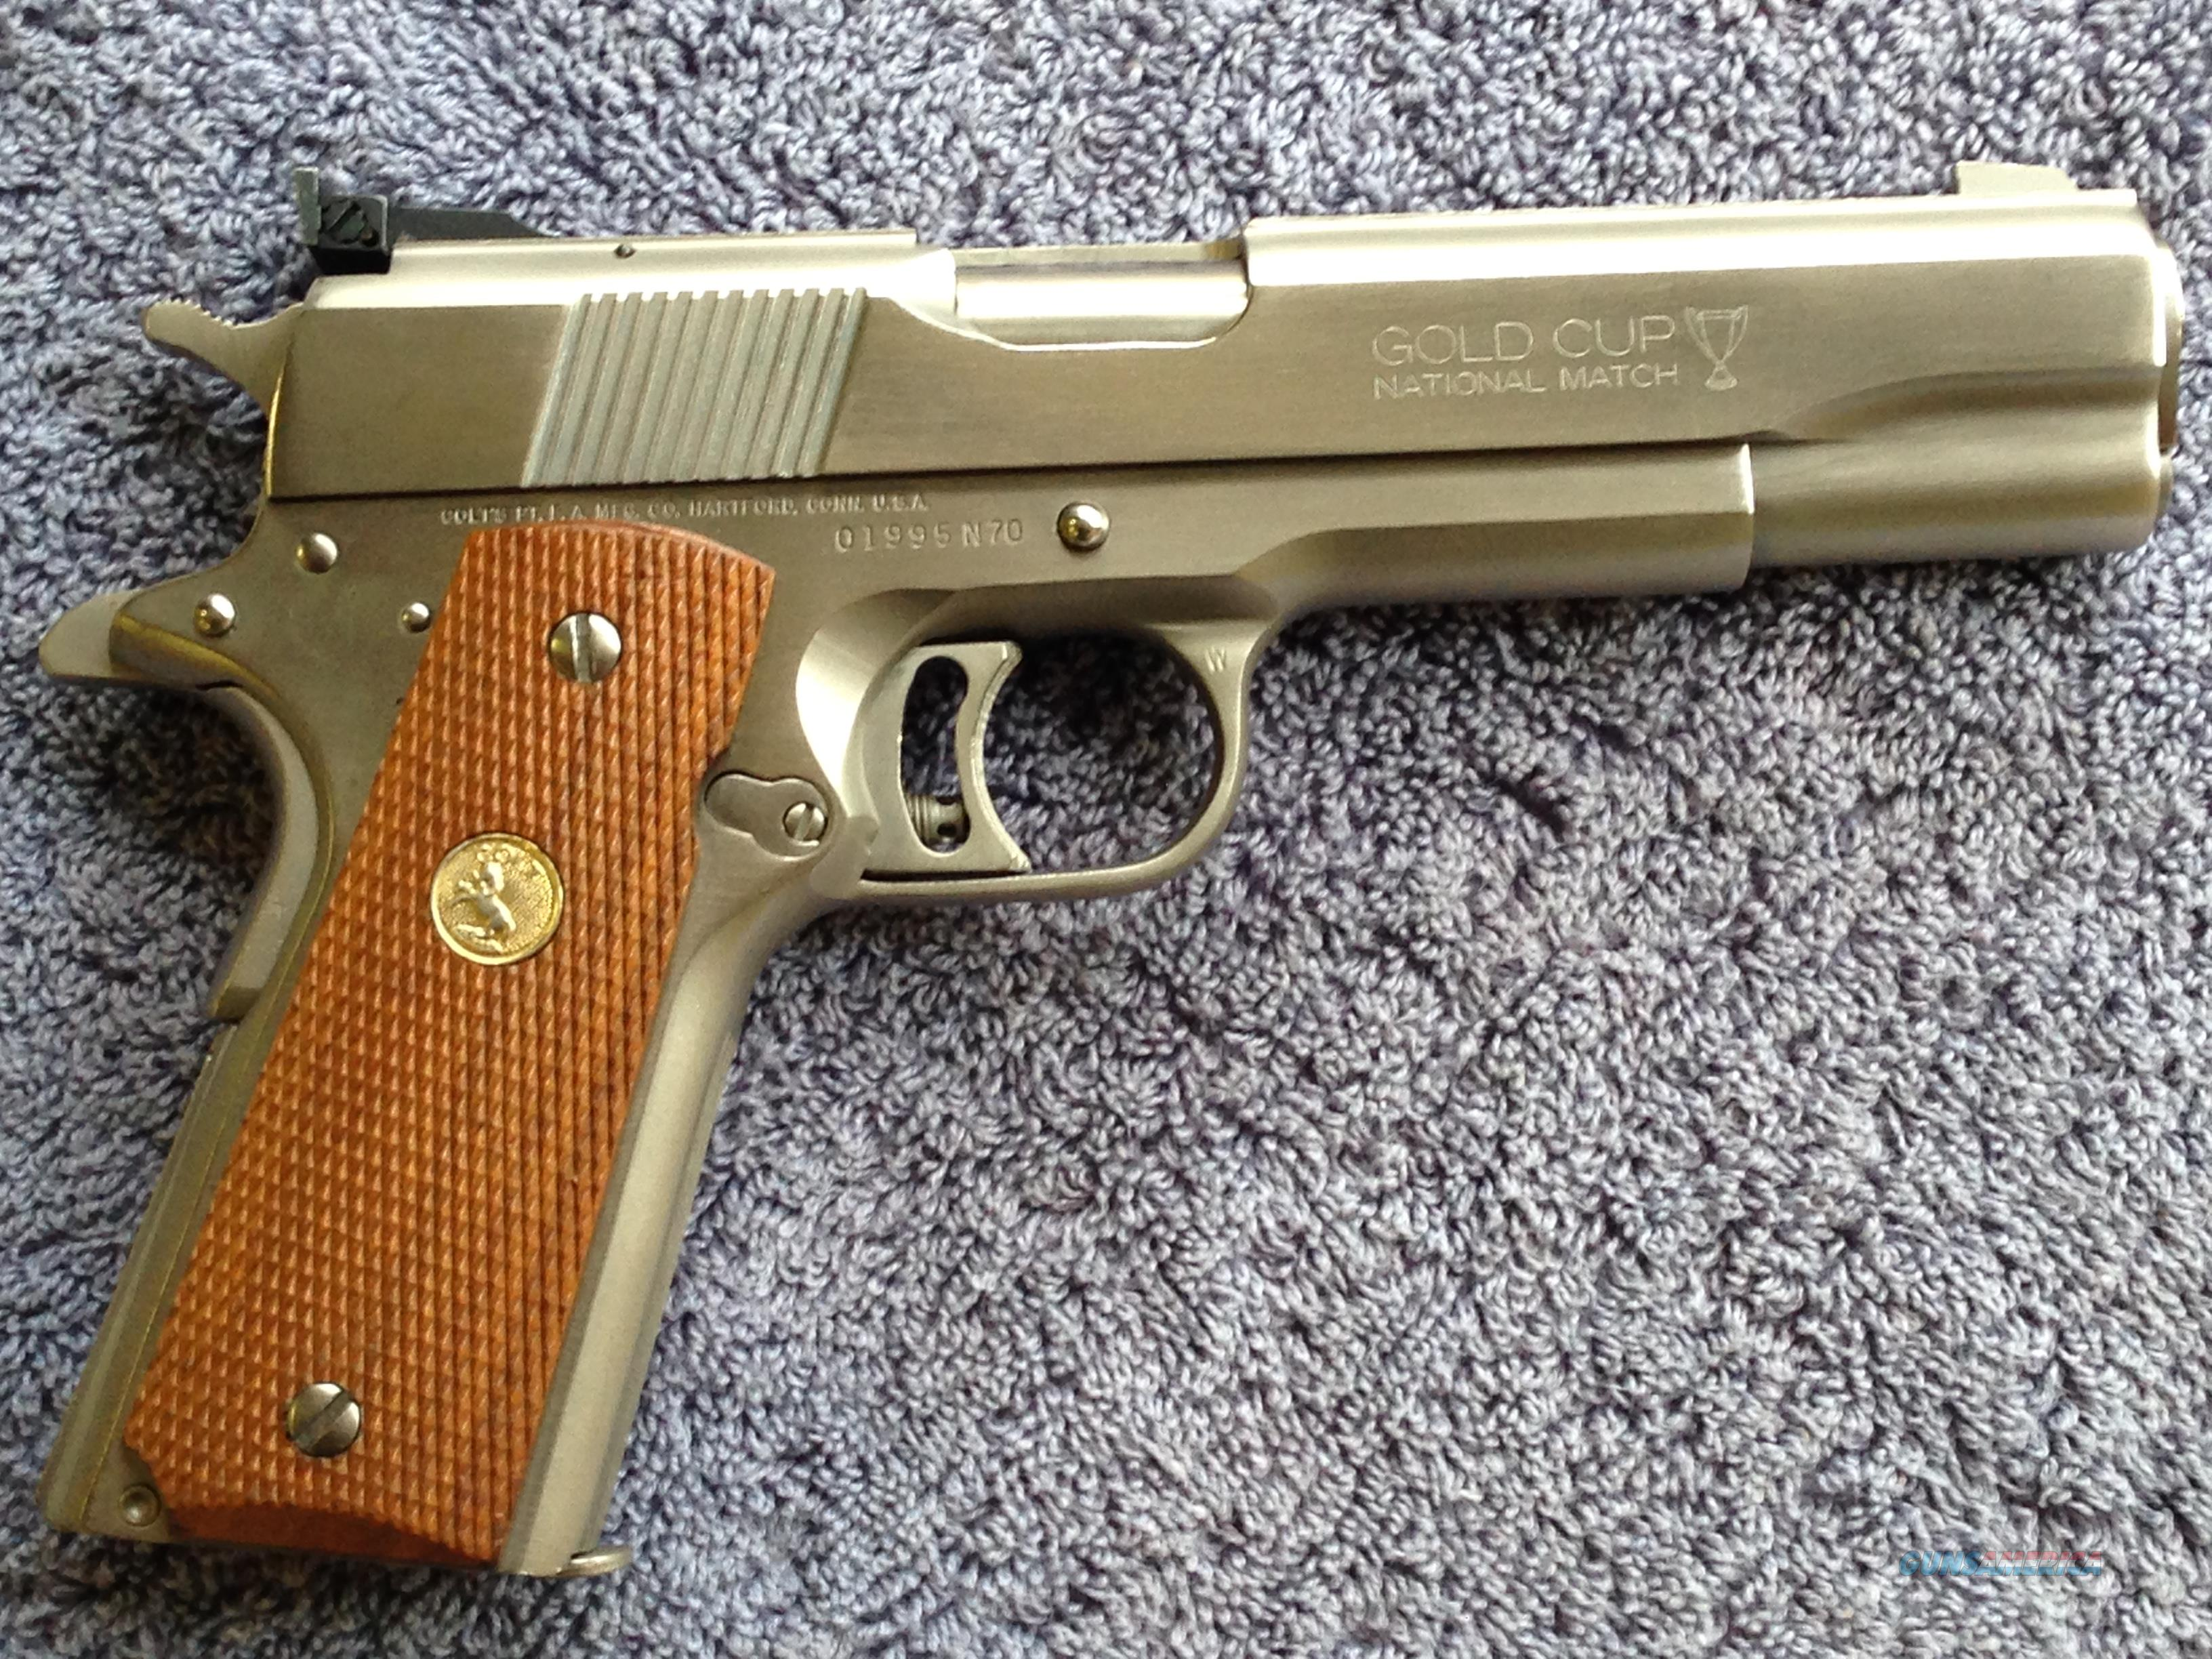 Colt 1911 Nickel Gold Cup National Match